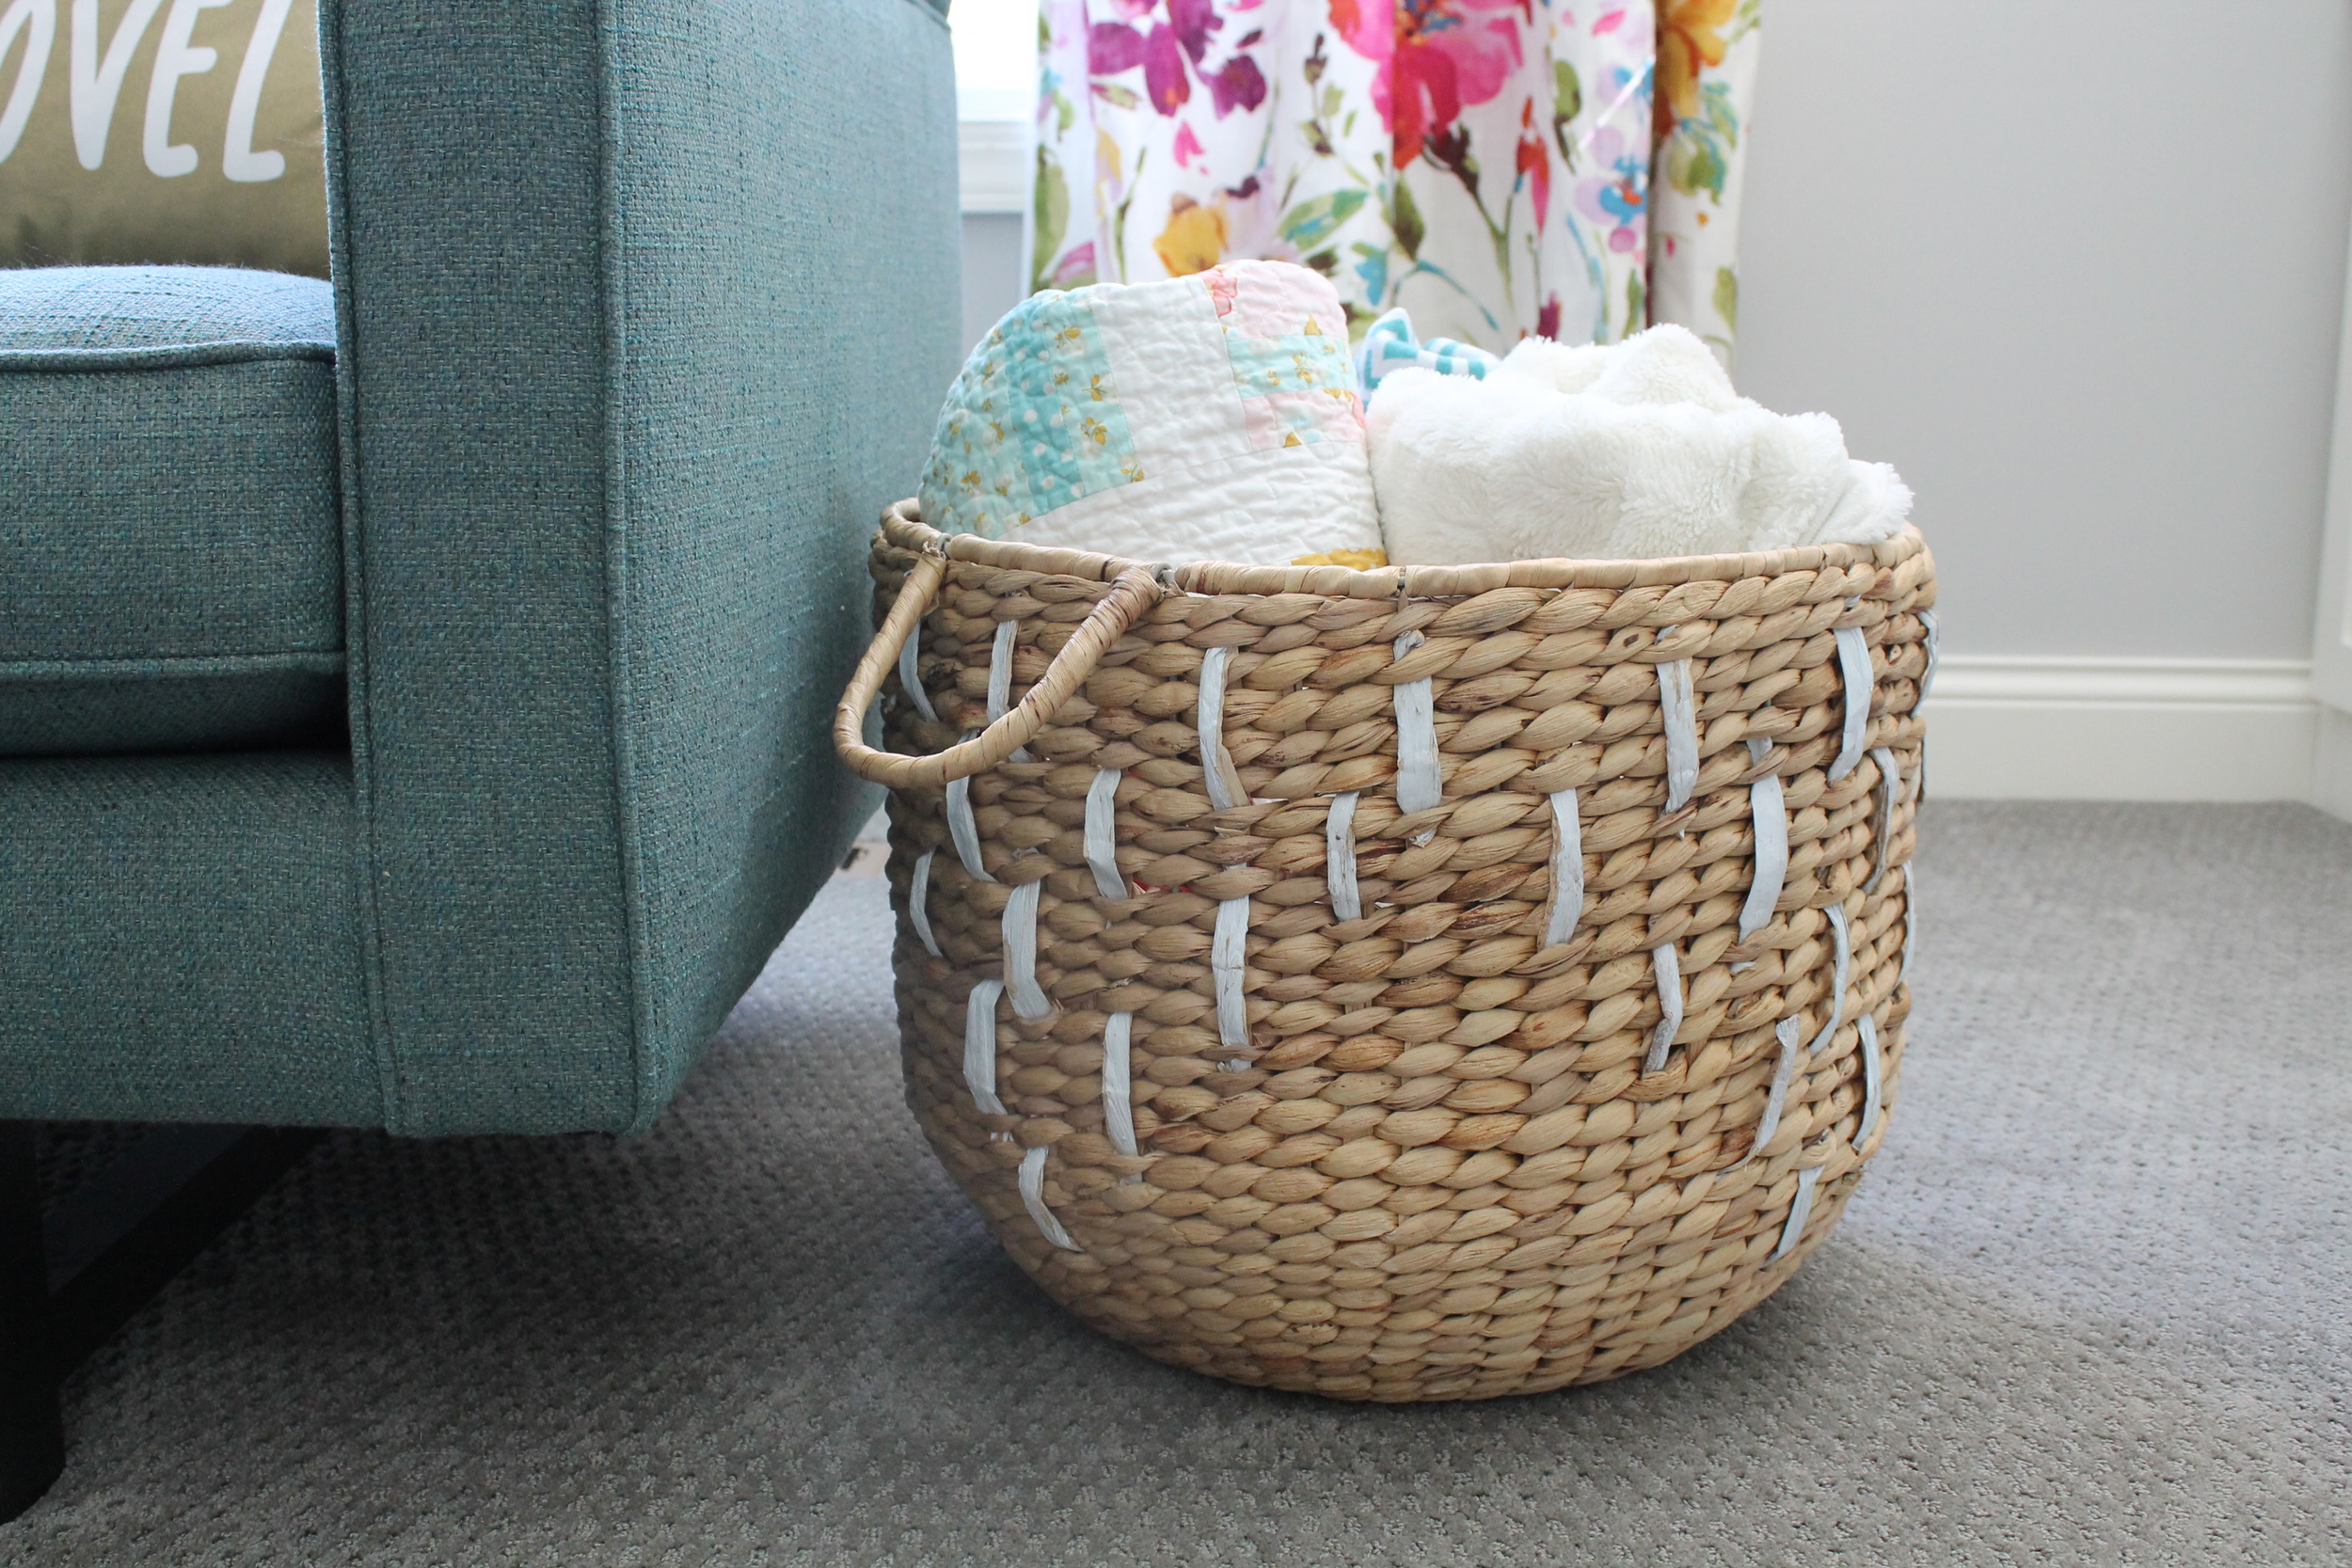 Target basket filled with cozy throw blankets.